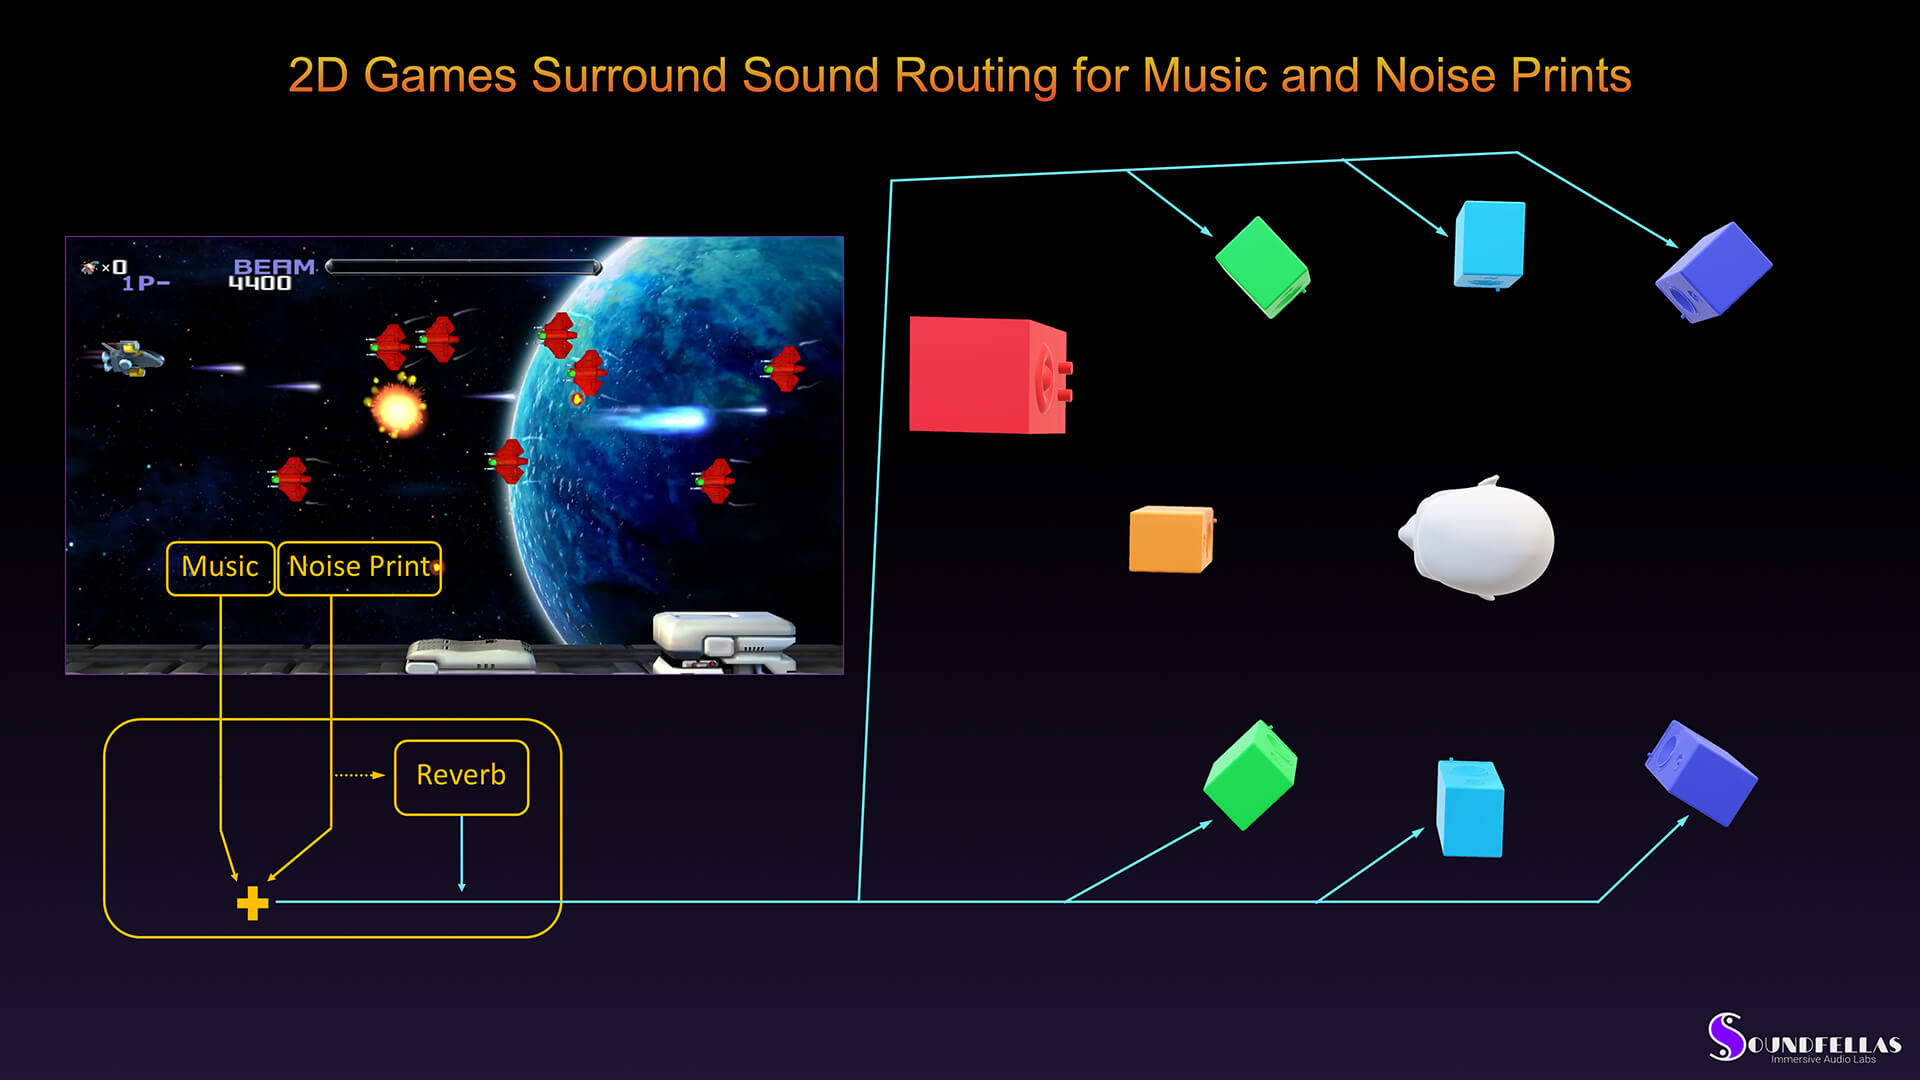 Image of 2D game surround sound routing for music and noise prints.